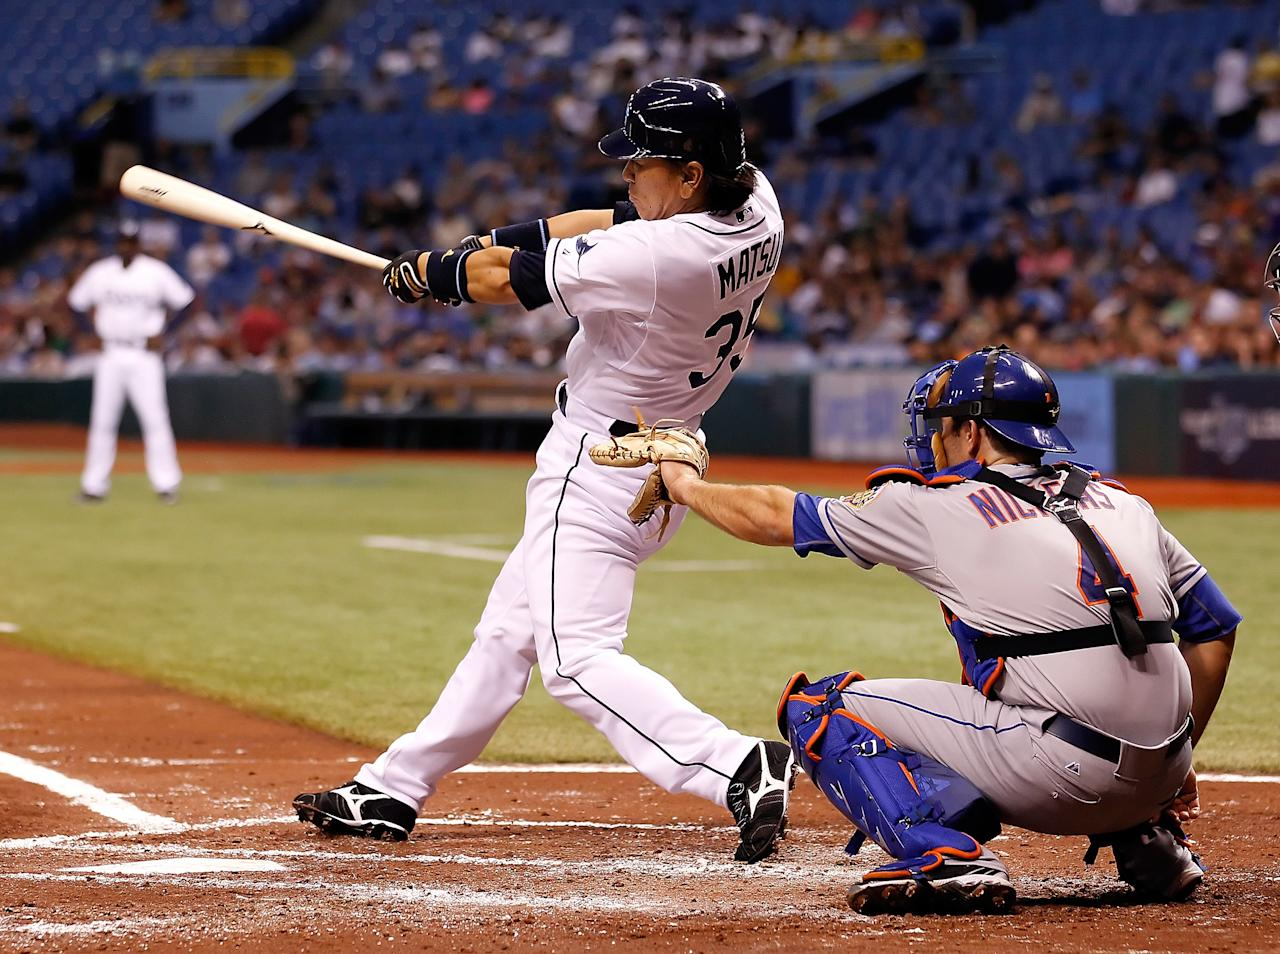 ST. PETERSBURG - JUNE 13:  Designated hitter Hideki Matsui #35 of the Tampa Bay Rays fouls off a pitch against the New York Mets during the game at Tropicana Field on June 13, 2012 in St. Petersburg, Florida.  (Photo by J. Meric/Getty Images)